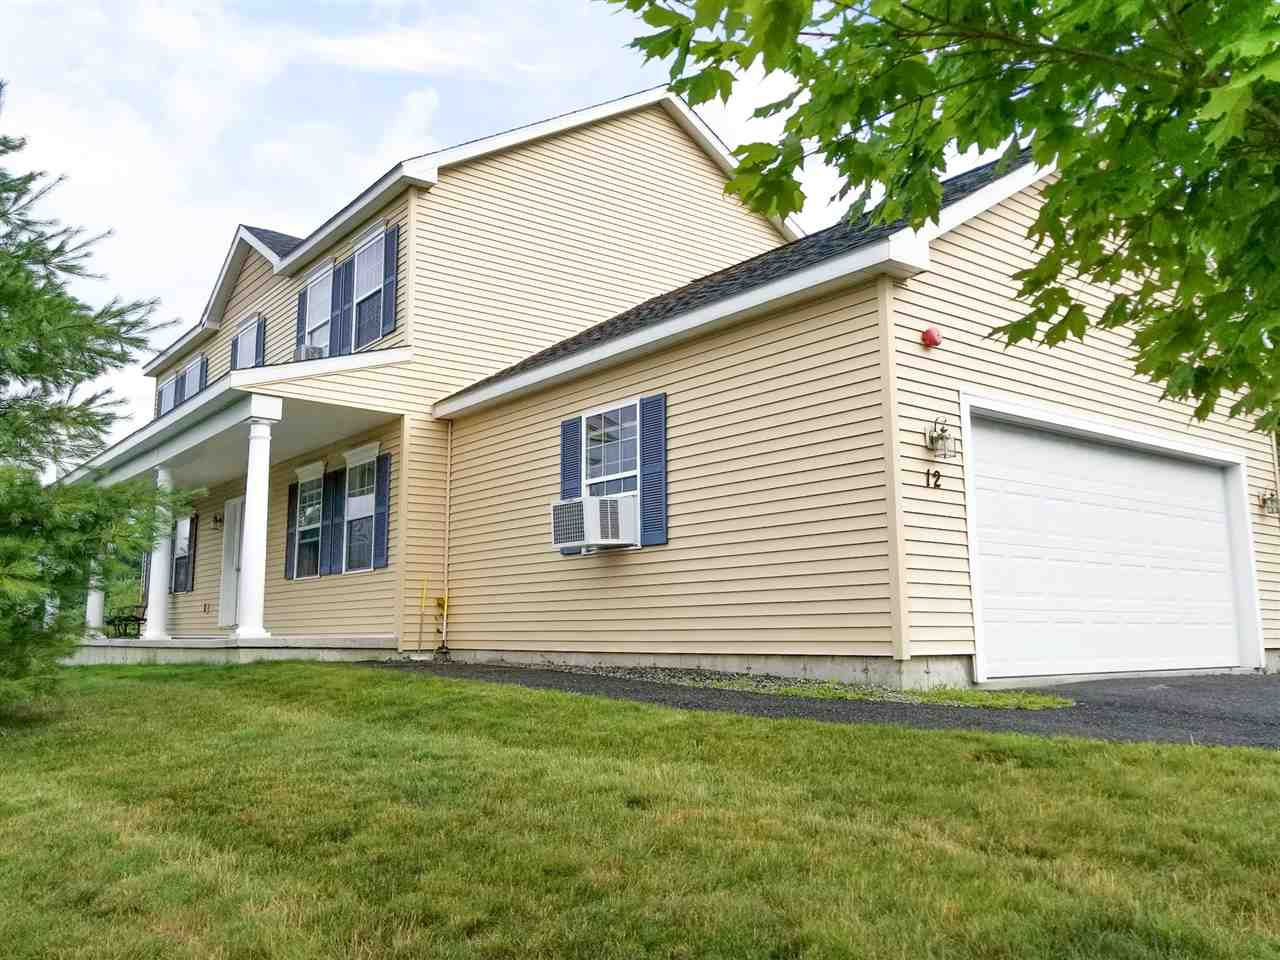 LEBANON NH Homes for sale